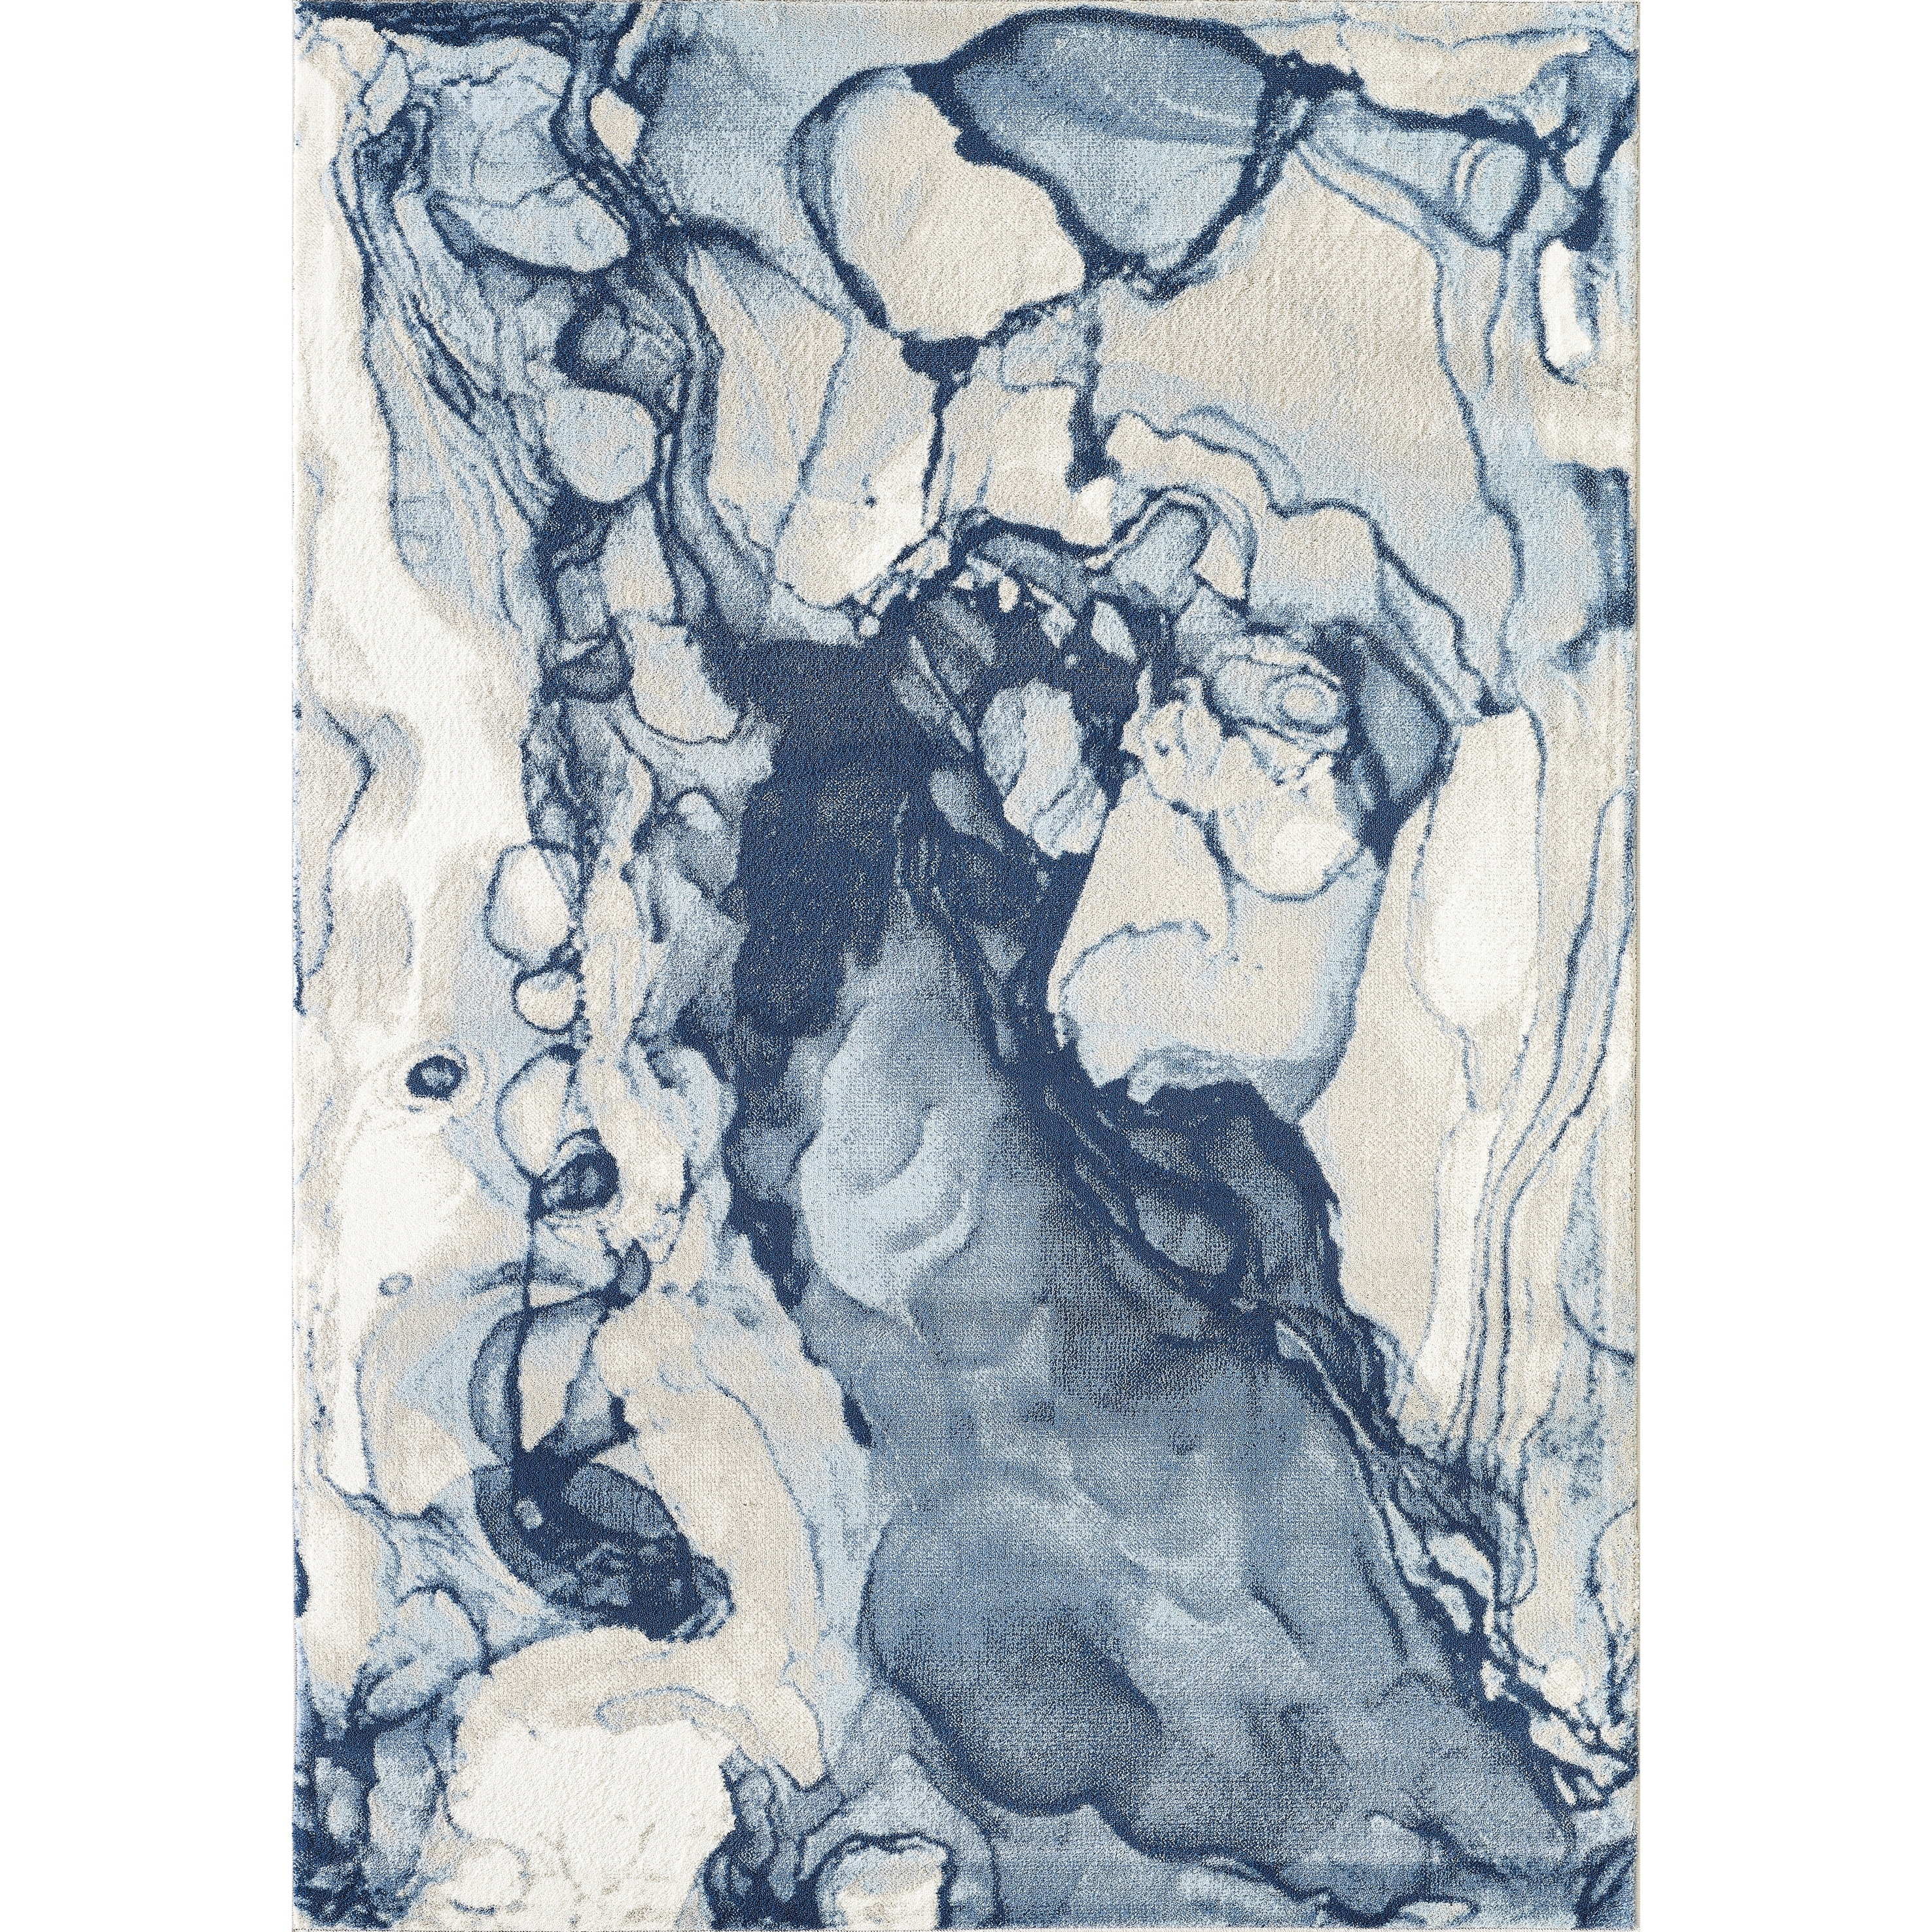 Abani Arto Contemporary Rectangle Abstract Liquid Marble Blue Area Rug Overstock 29935451